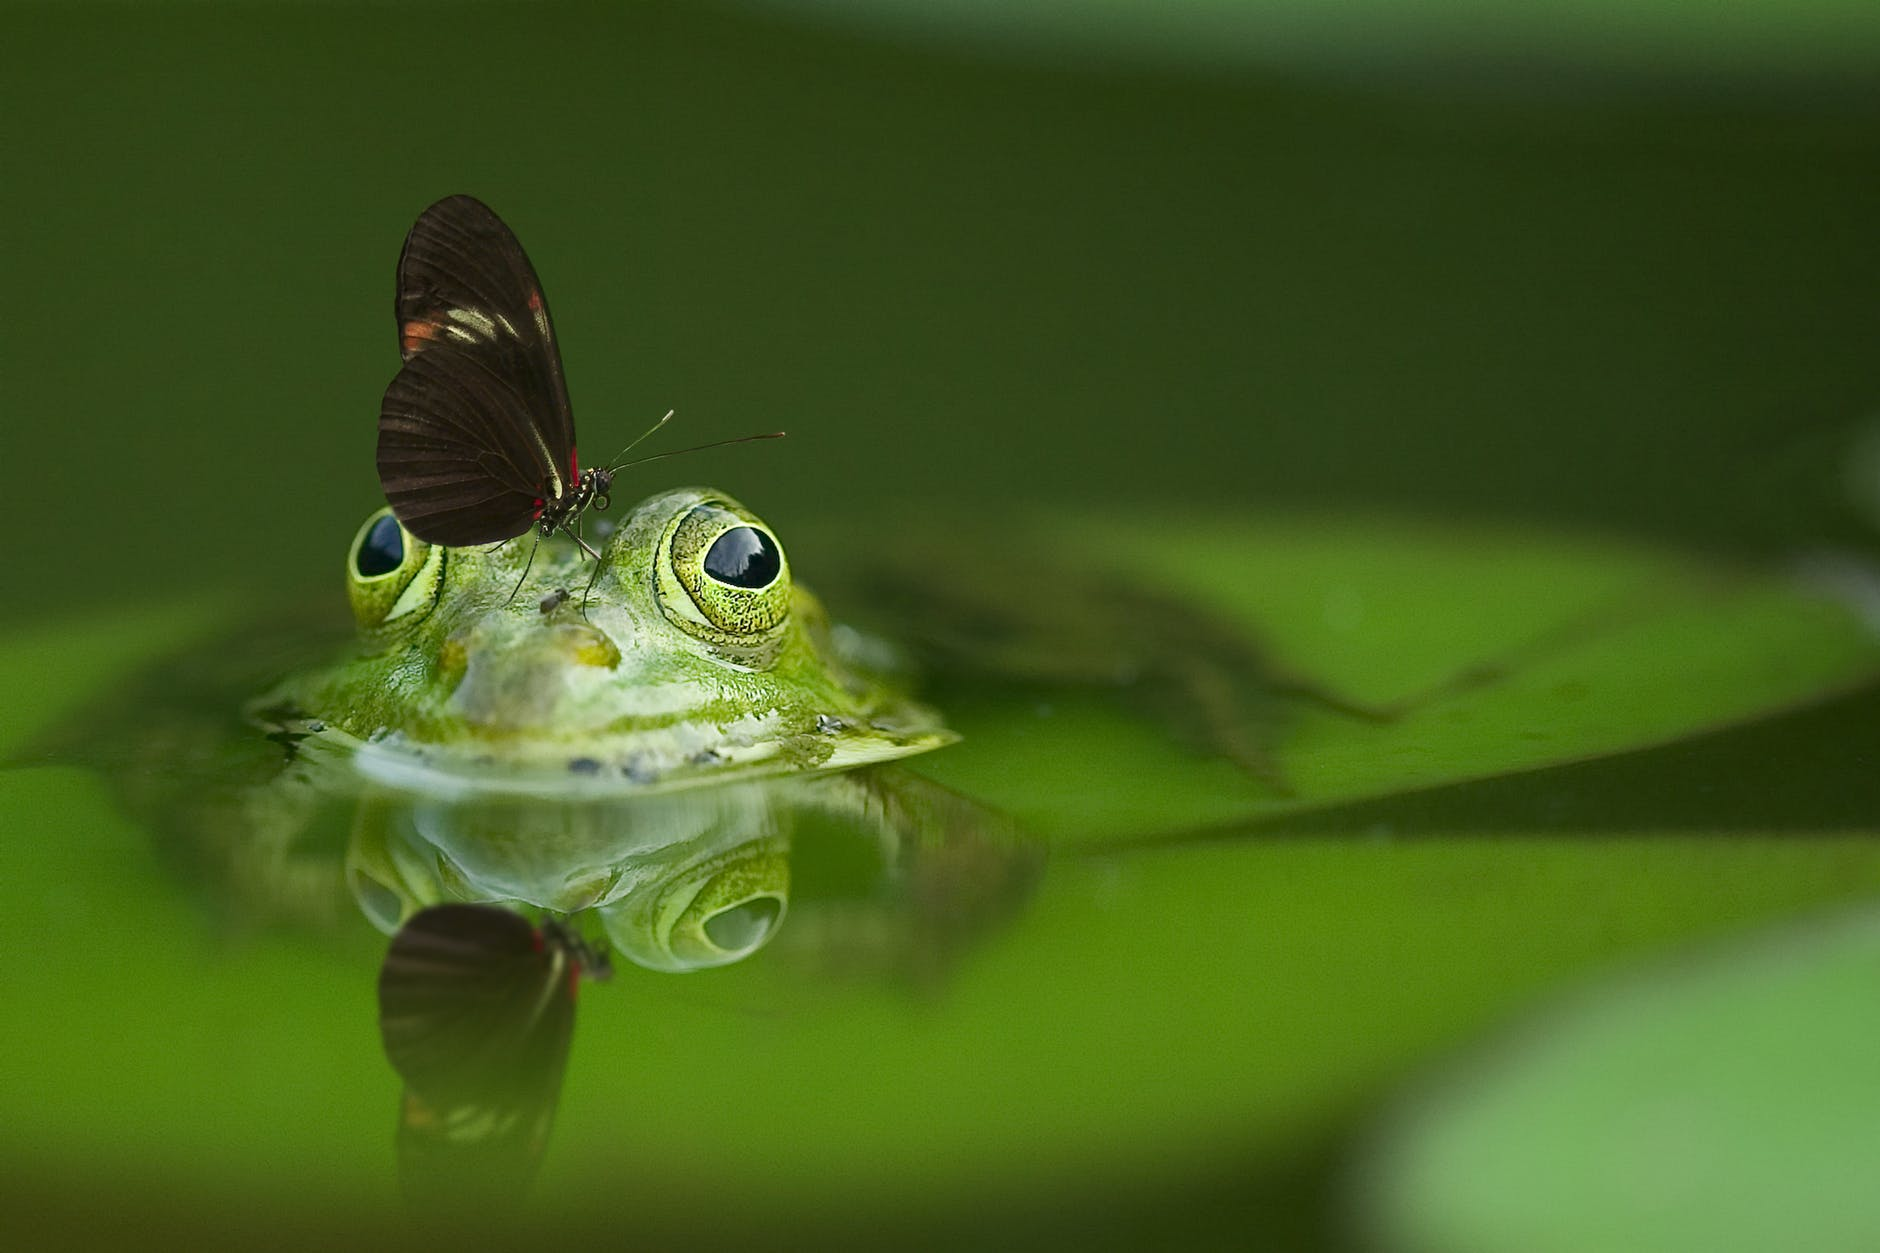 WISER, GREENER AND PEACEFUL CREATURE – FROGS